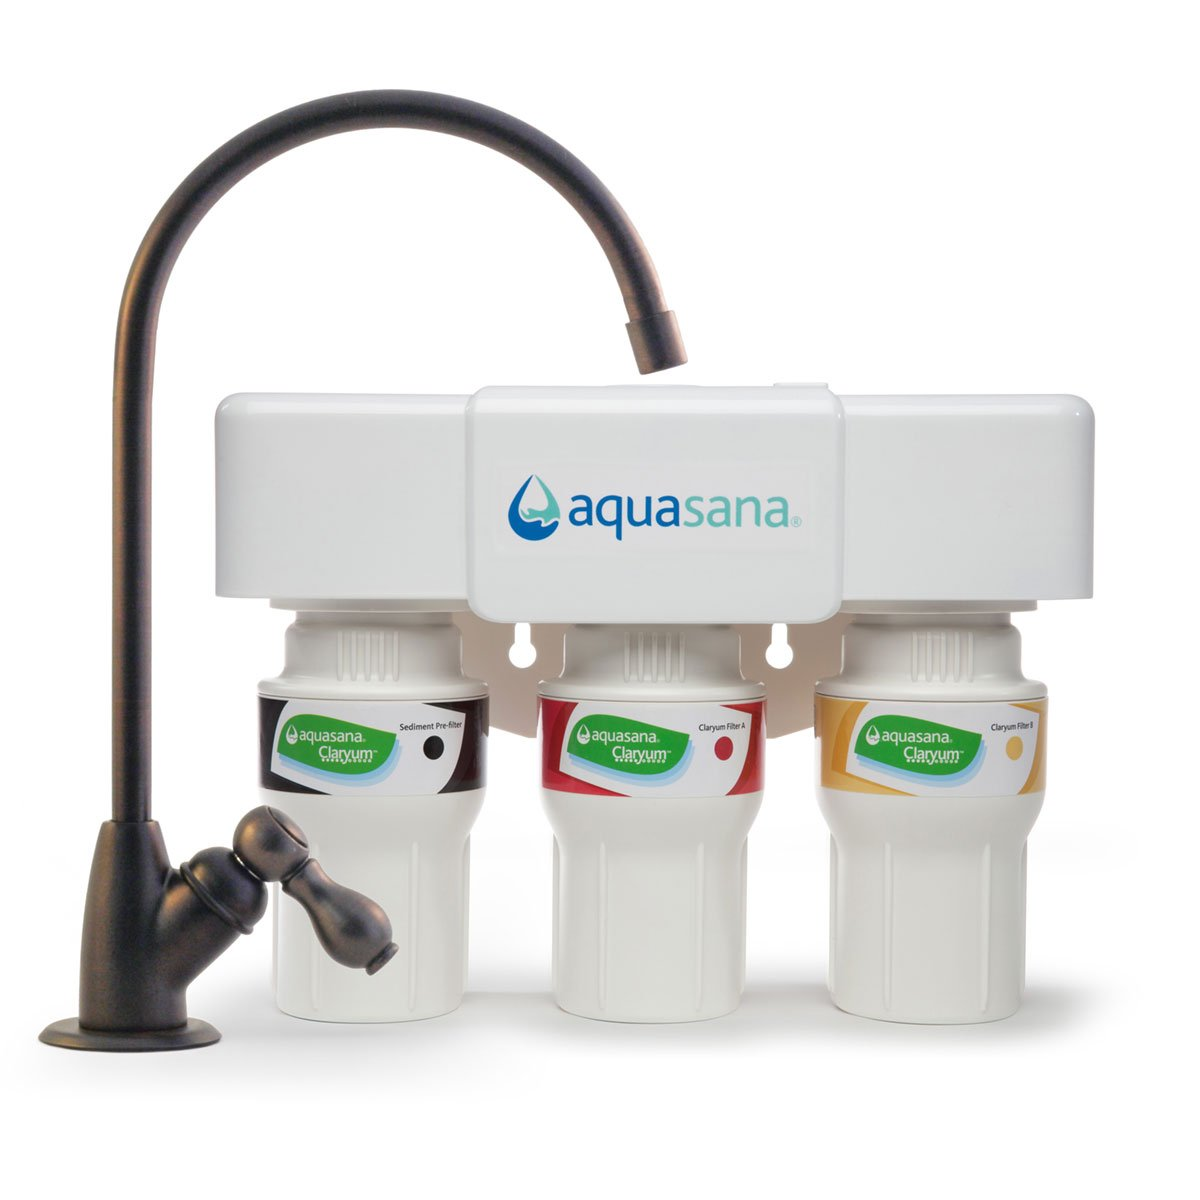 Aquasana 3-Stage Under Sink Water Filter System with Oil-Rubbed Bronze Faucet